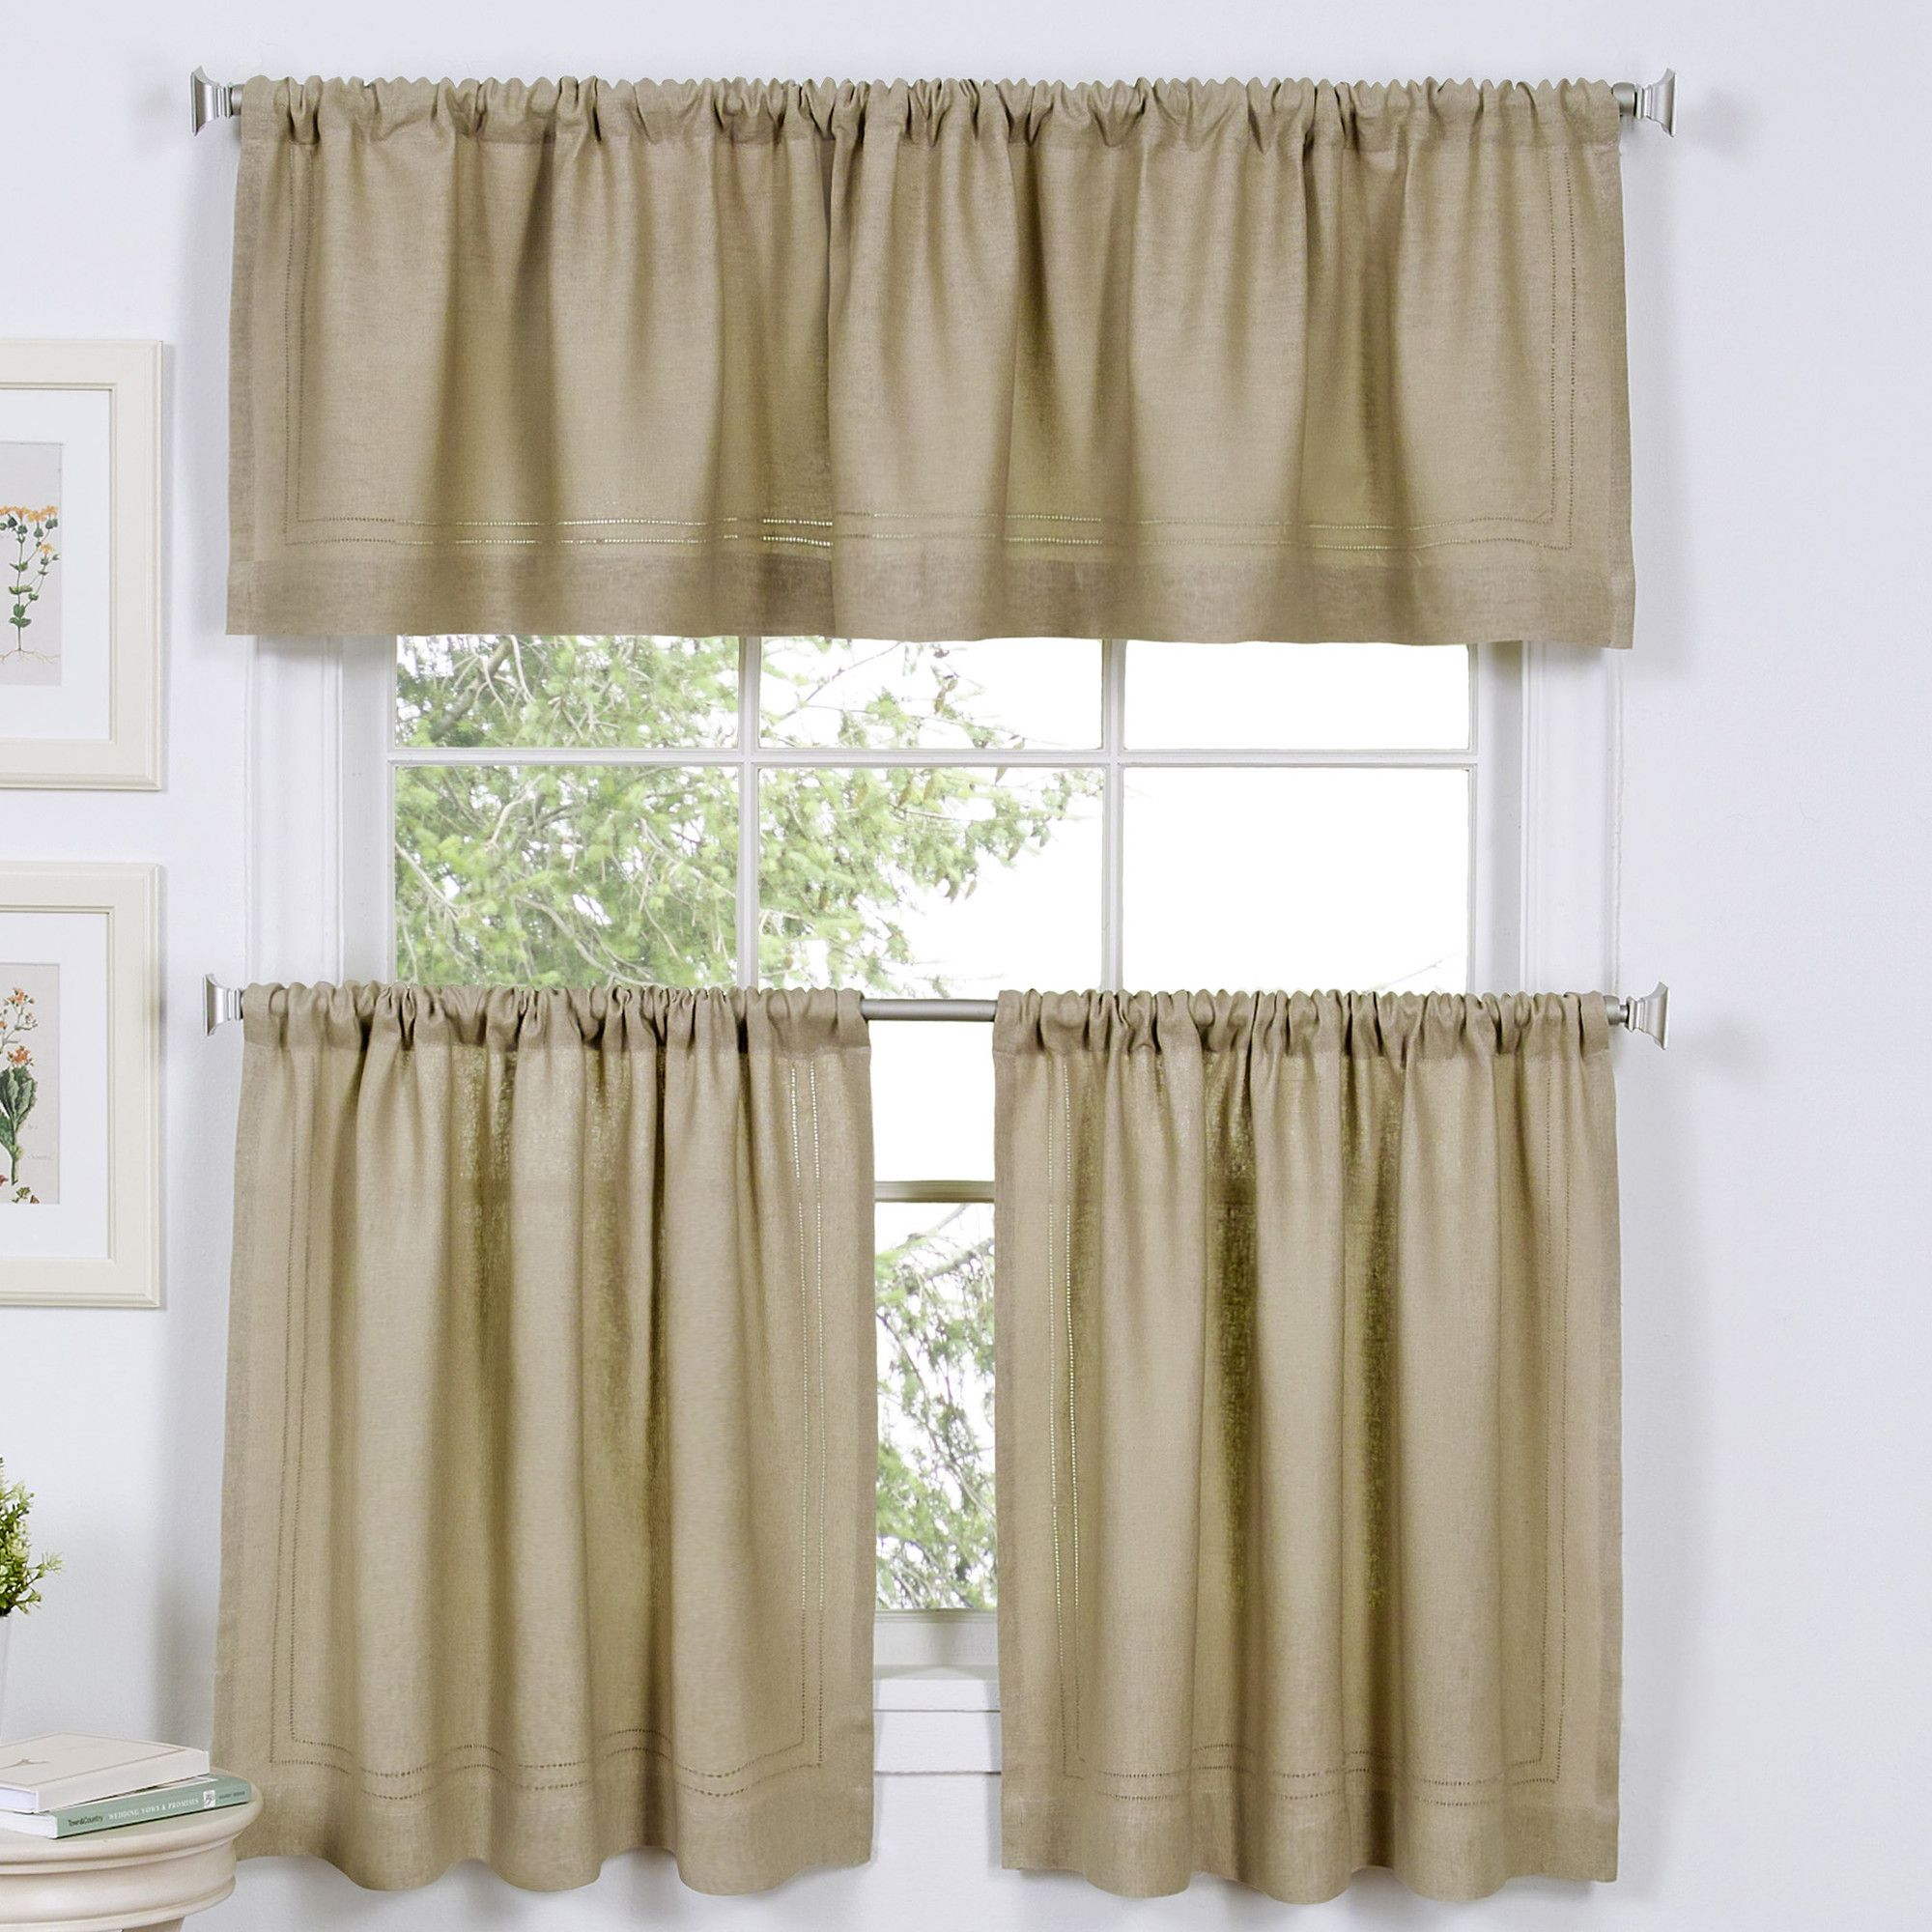 2 Piece Ruffle Rod Pocket Valance Set Elrene Home Fashions